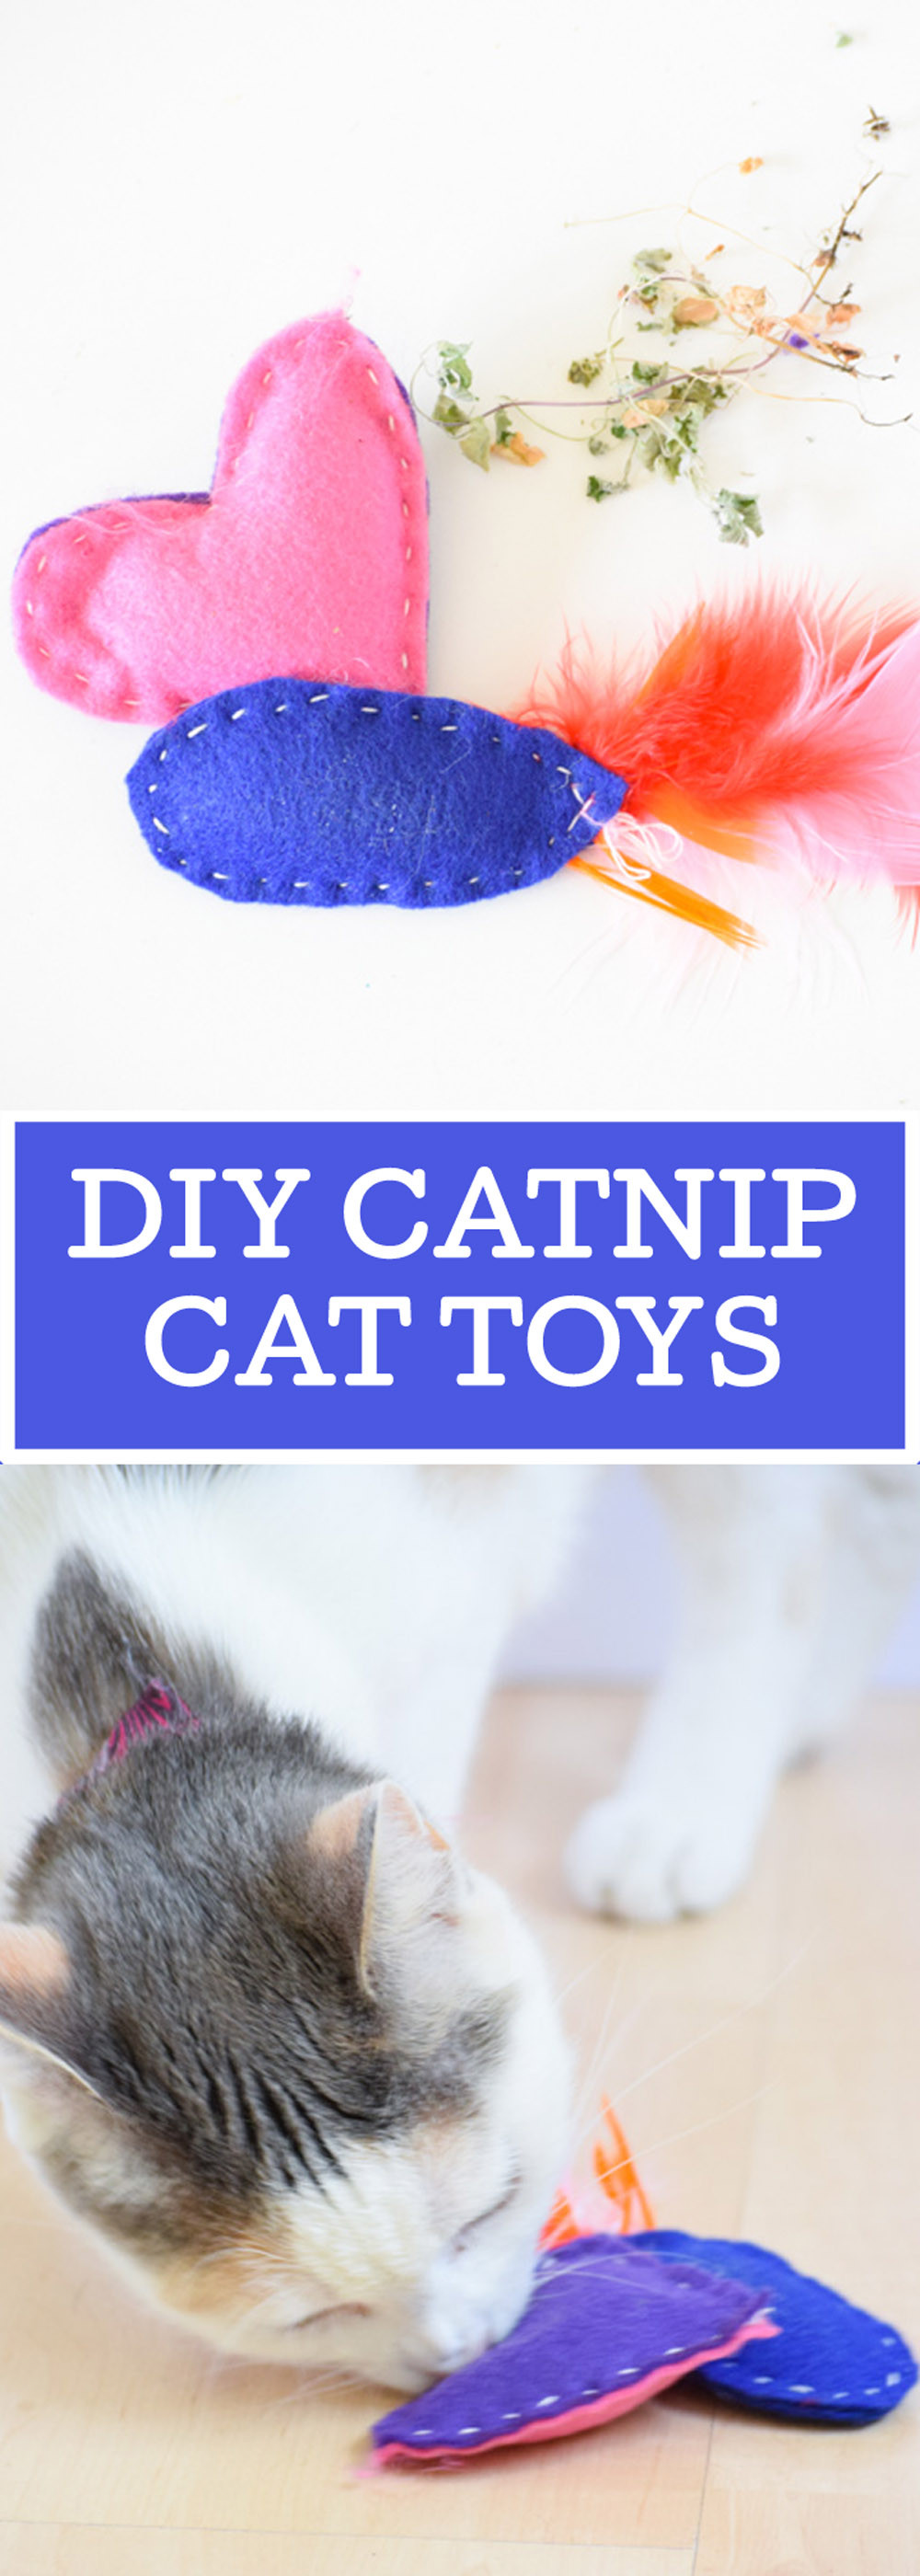 Best ideas about DIY Catnip Toys . Save or Pin DIY Catnip Cat Toys Your Everyday Family Now.